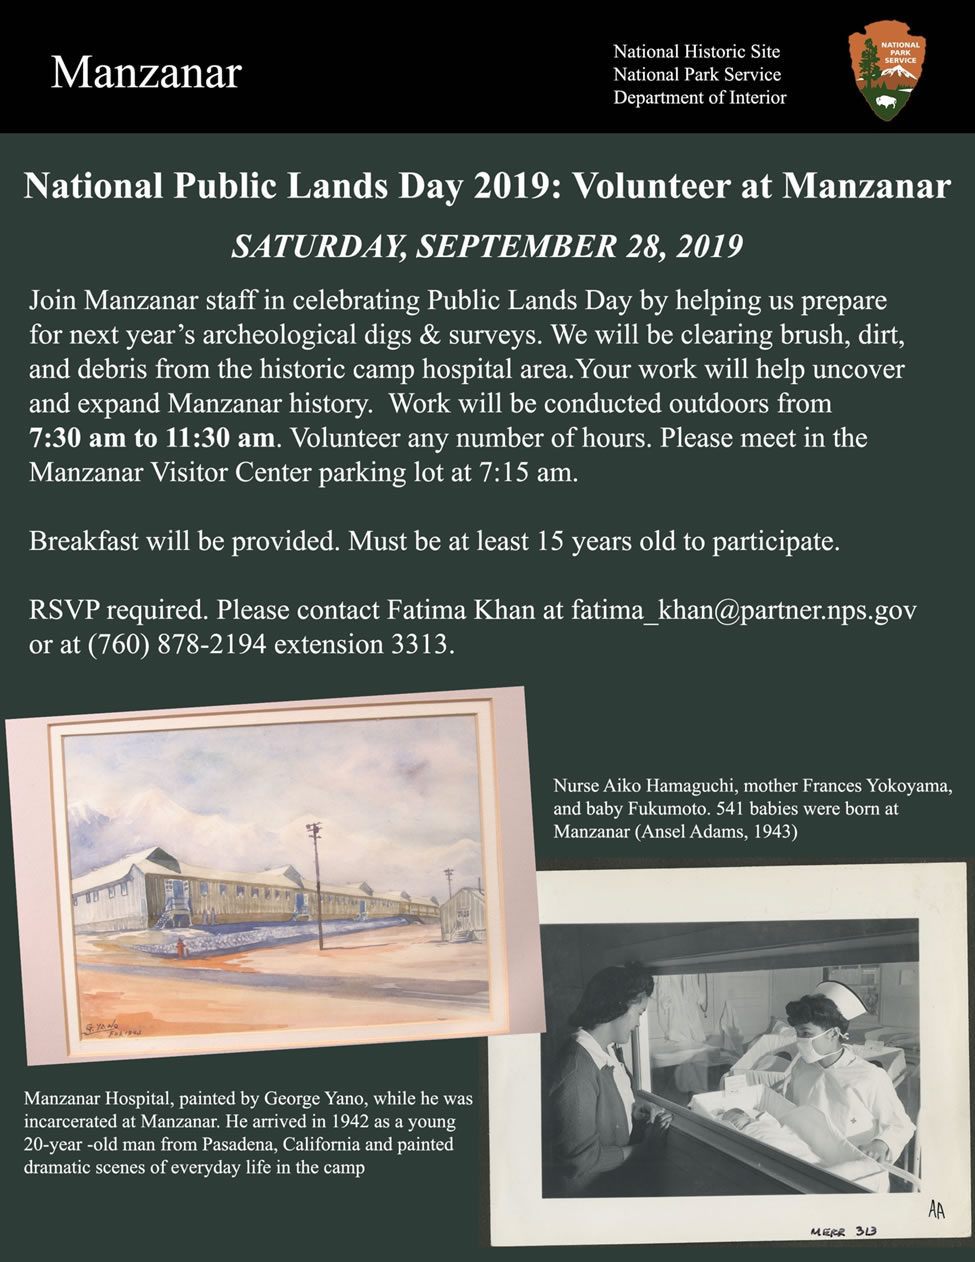 National Public Lands Day flyer